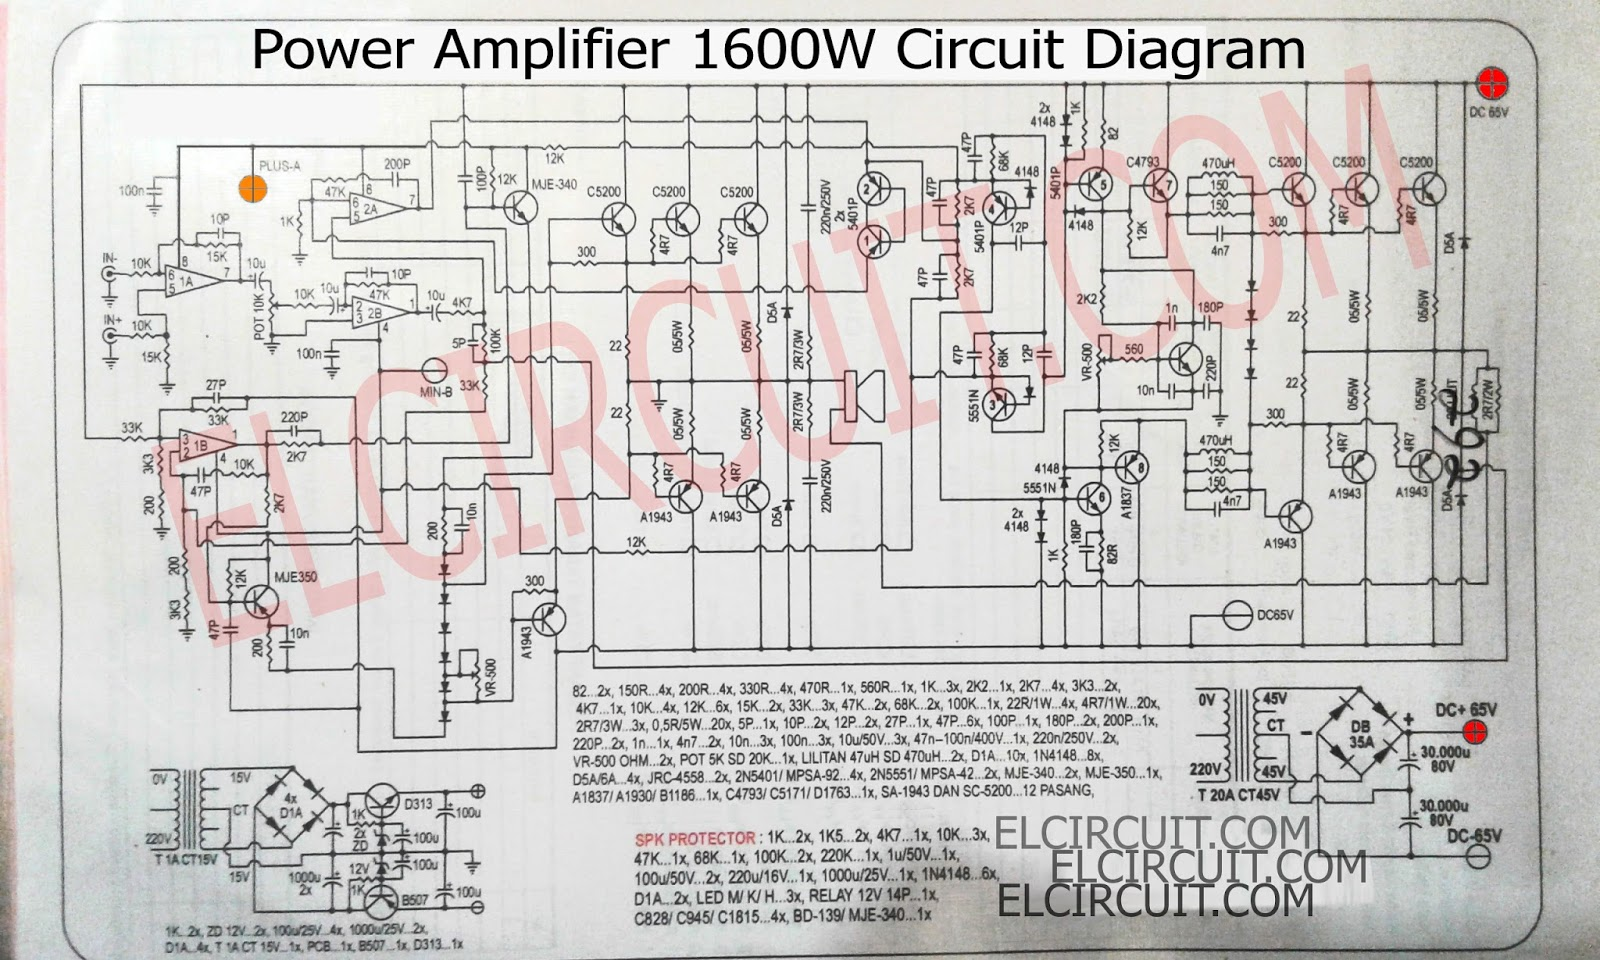 Power Amplifier Diagram Layout Free Wiring For You Com Circuitdiagram Amplifiercircuit Thevoicerecordercircuithtml 1600w High Circuit Complete Pcb Electronic Rh Elcircuit